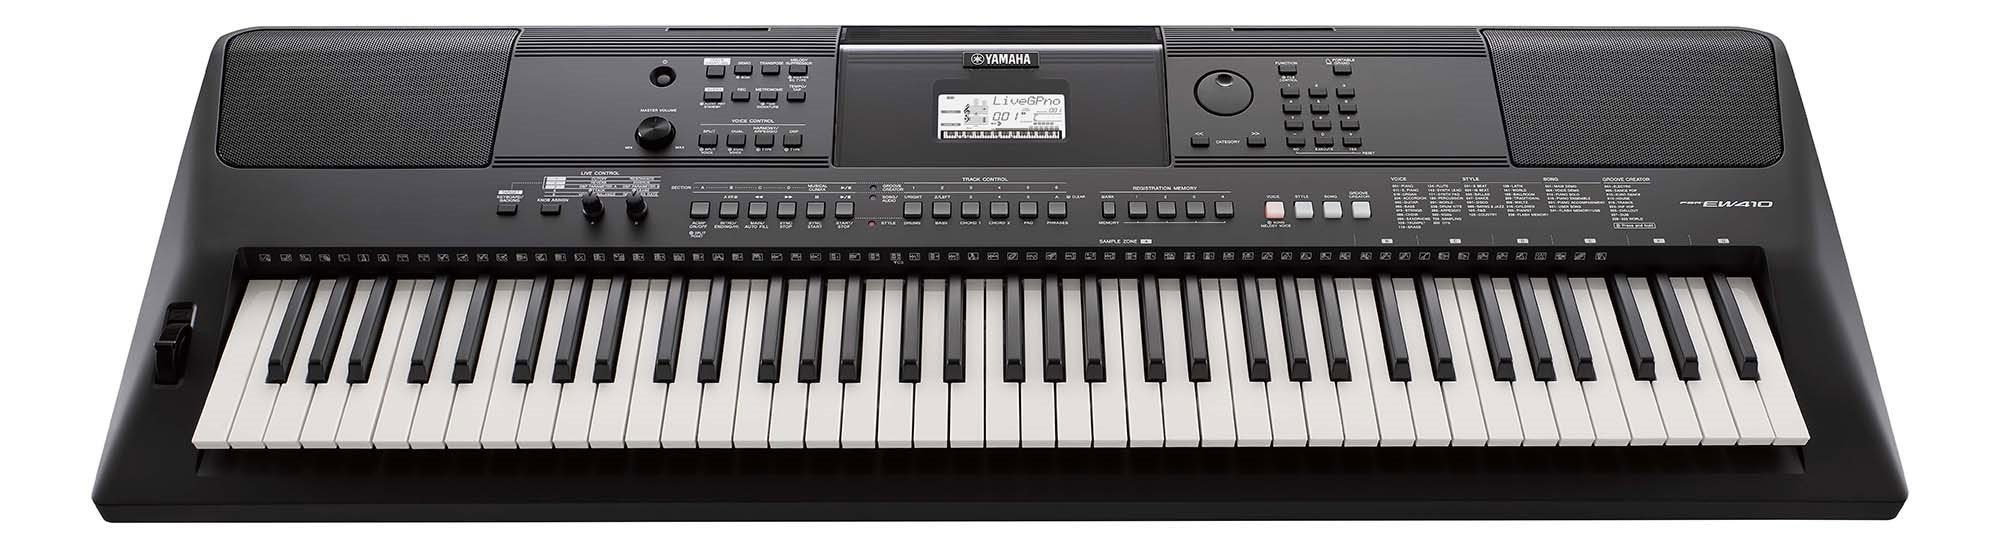 Yamaha PSR-EW410 digitalkeyboard